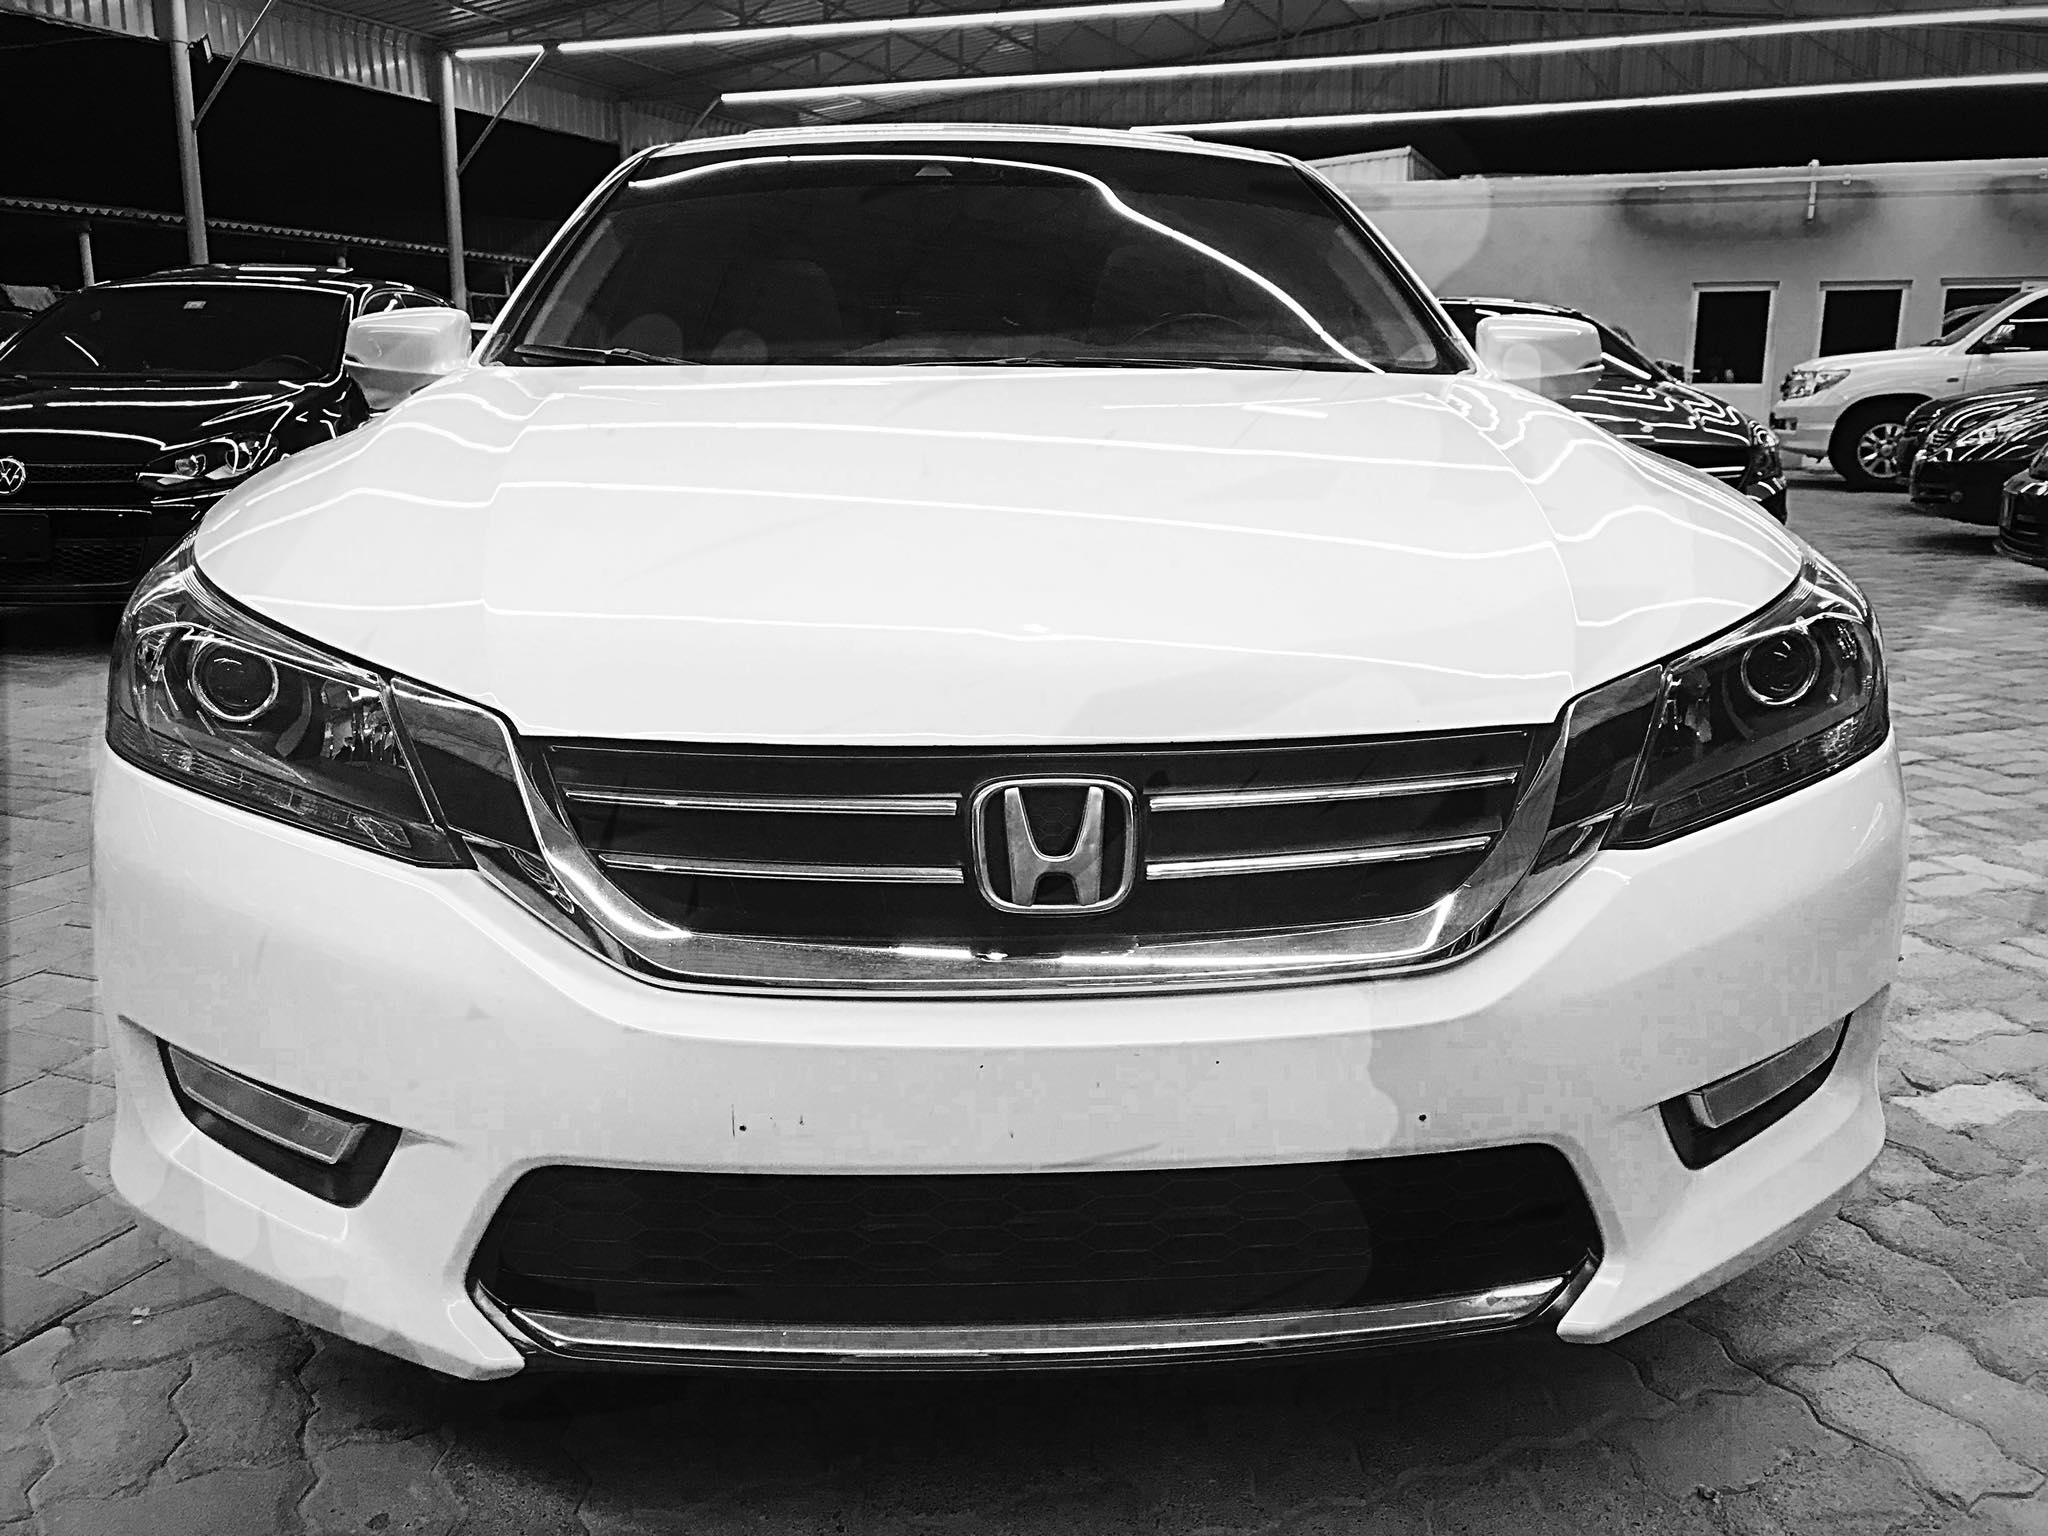 Used honda accord 2014 car for sale in ajman 757542 for Honda accord 2014 for sale